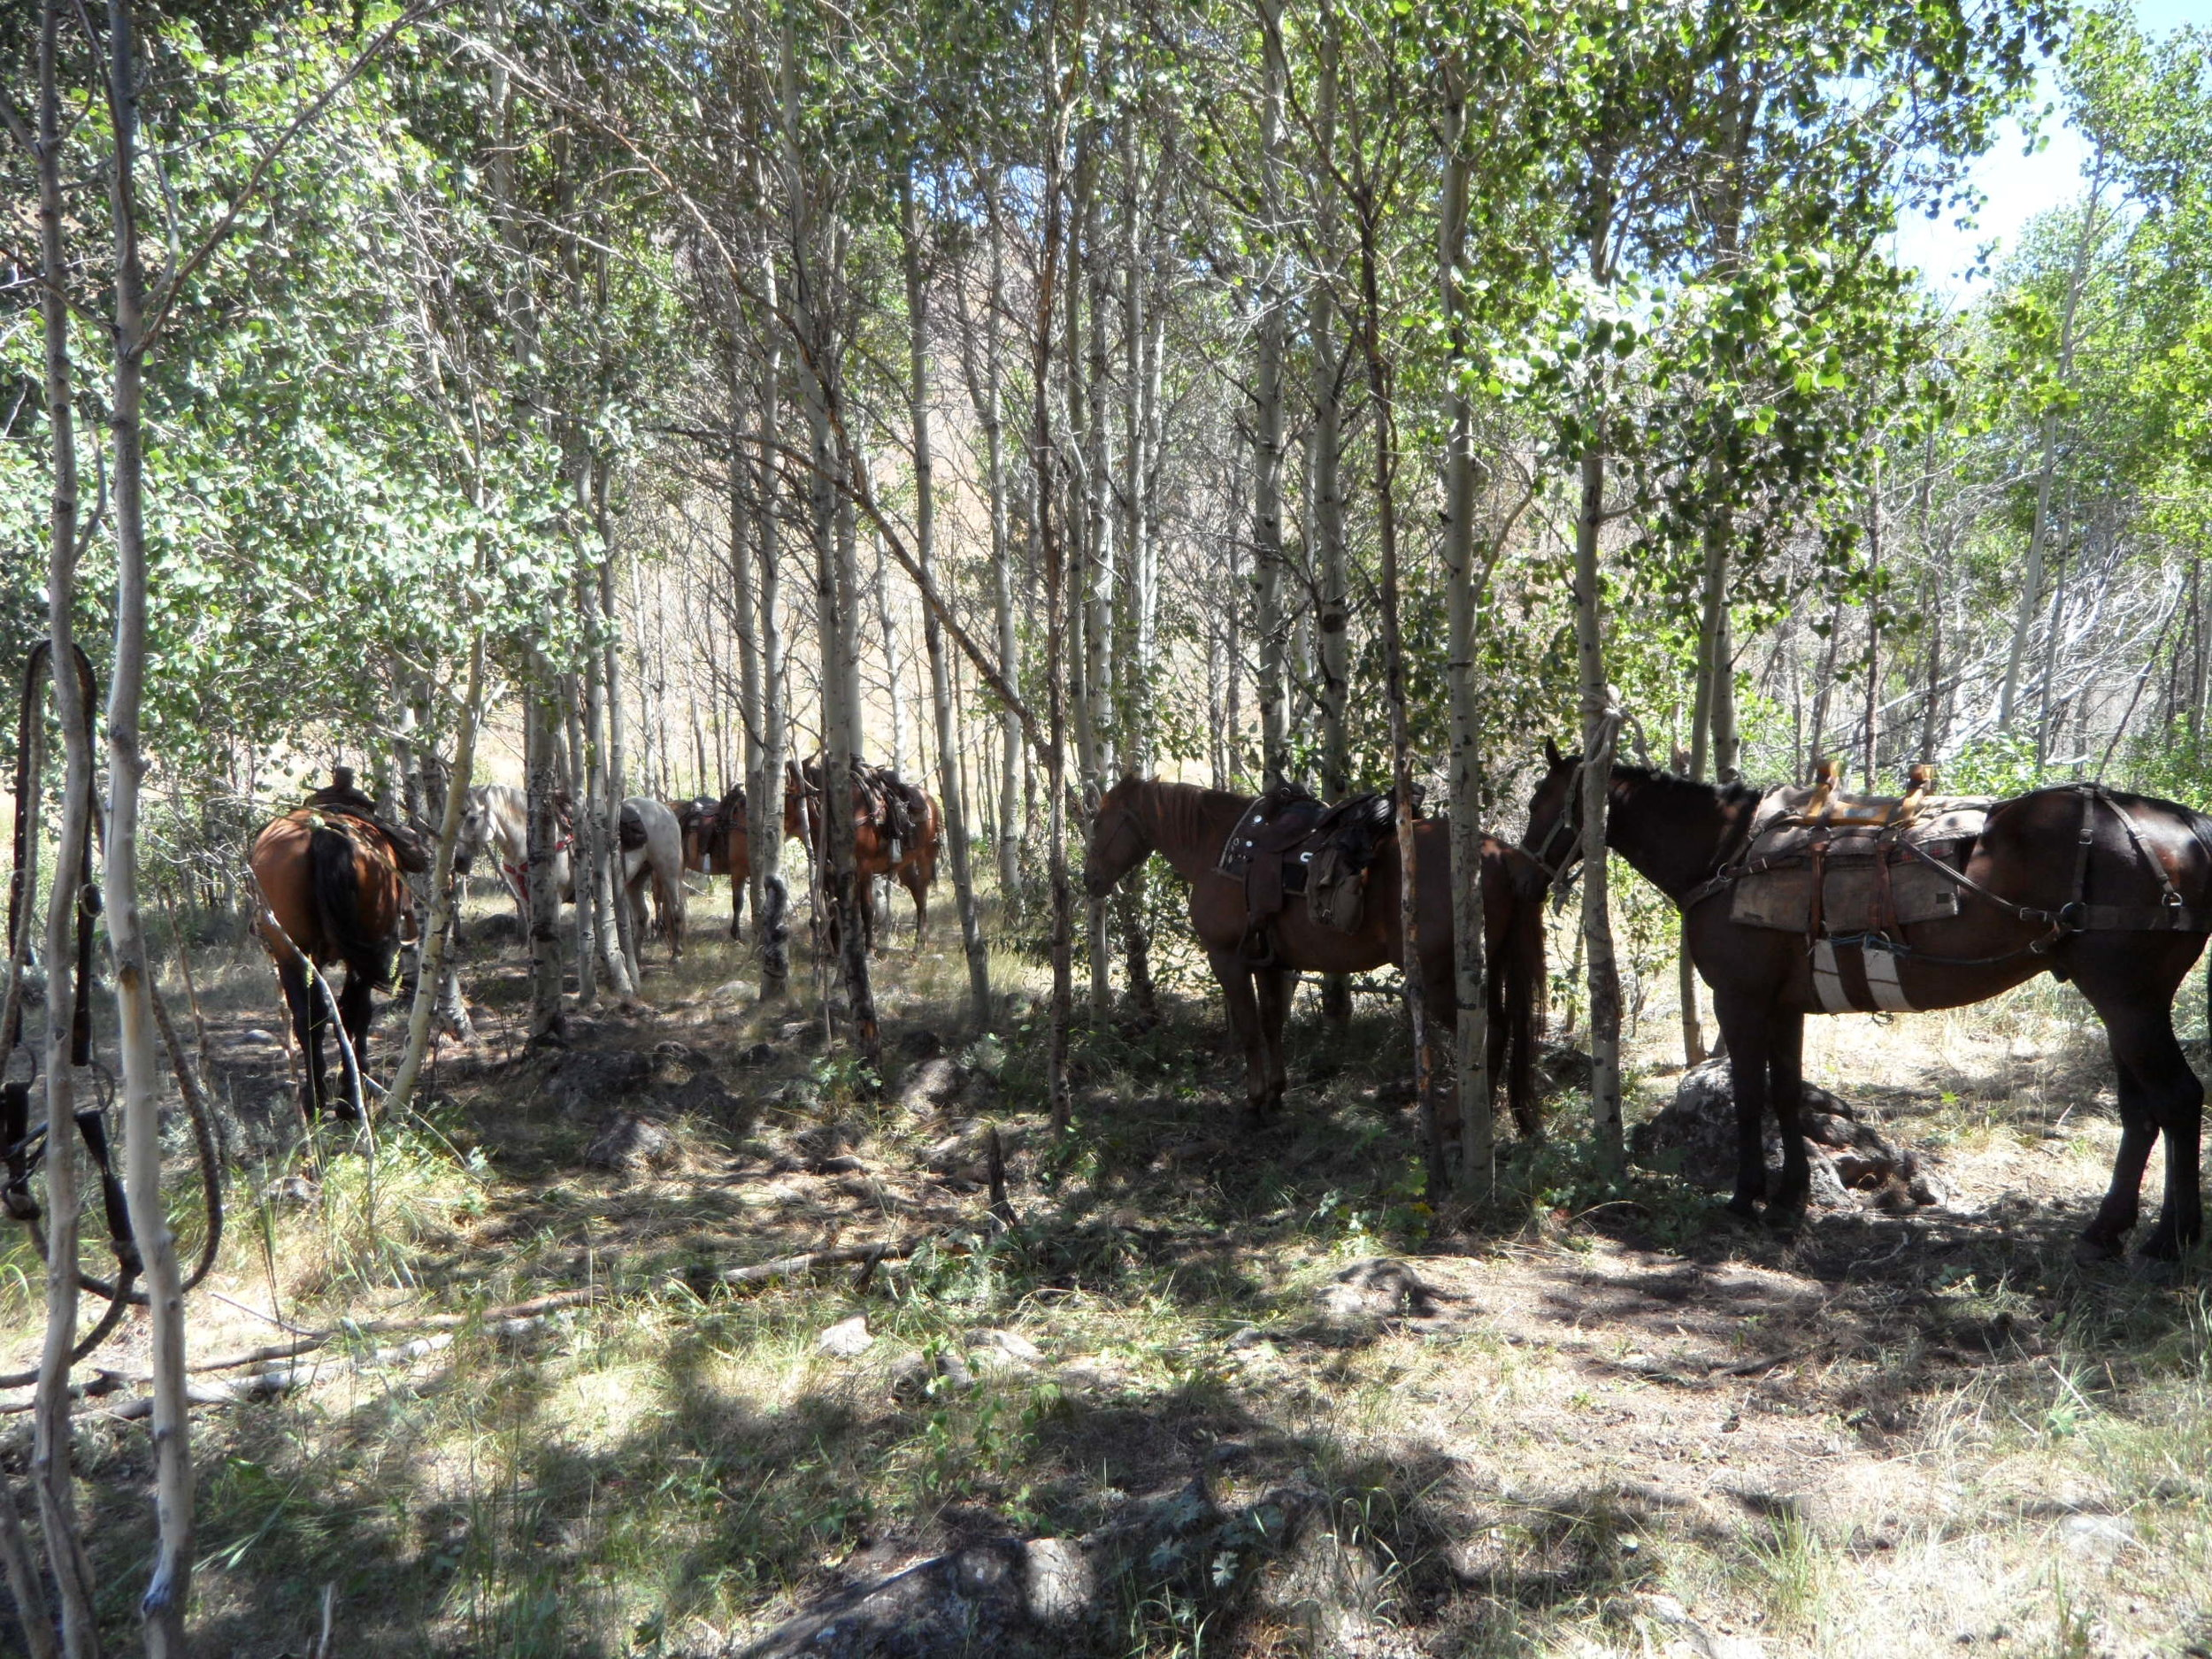 The Roses' Guest Horses (NV015)